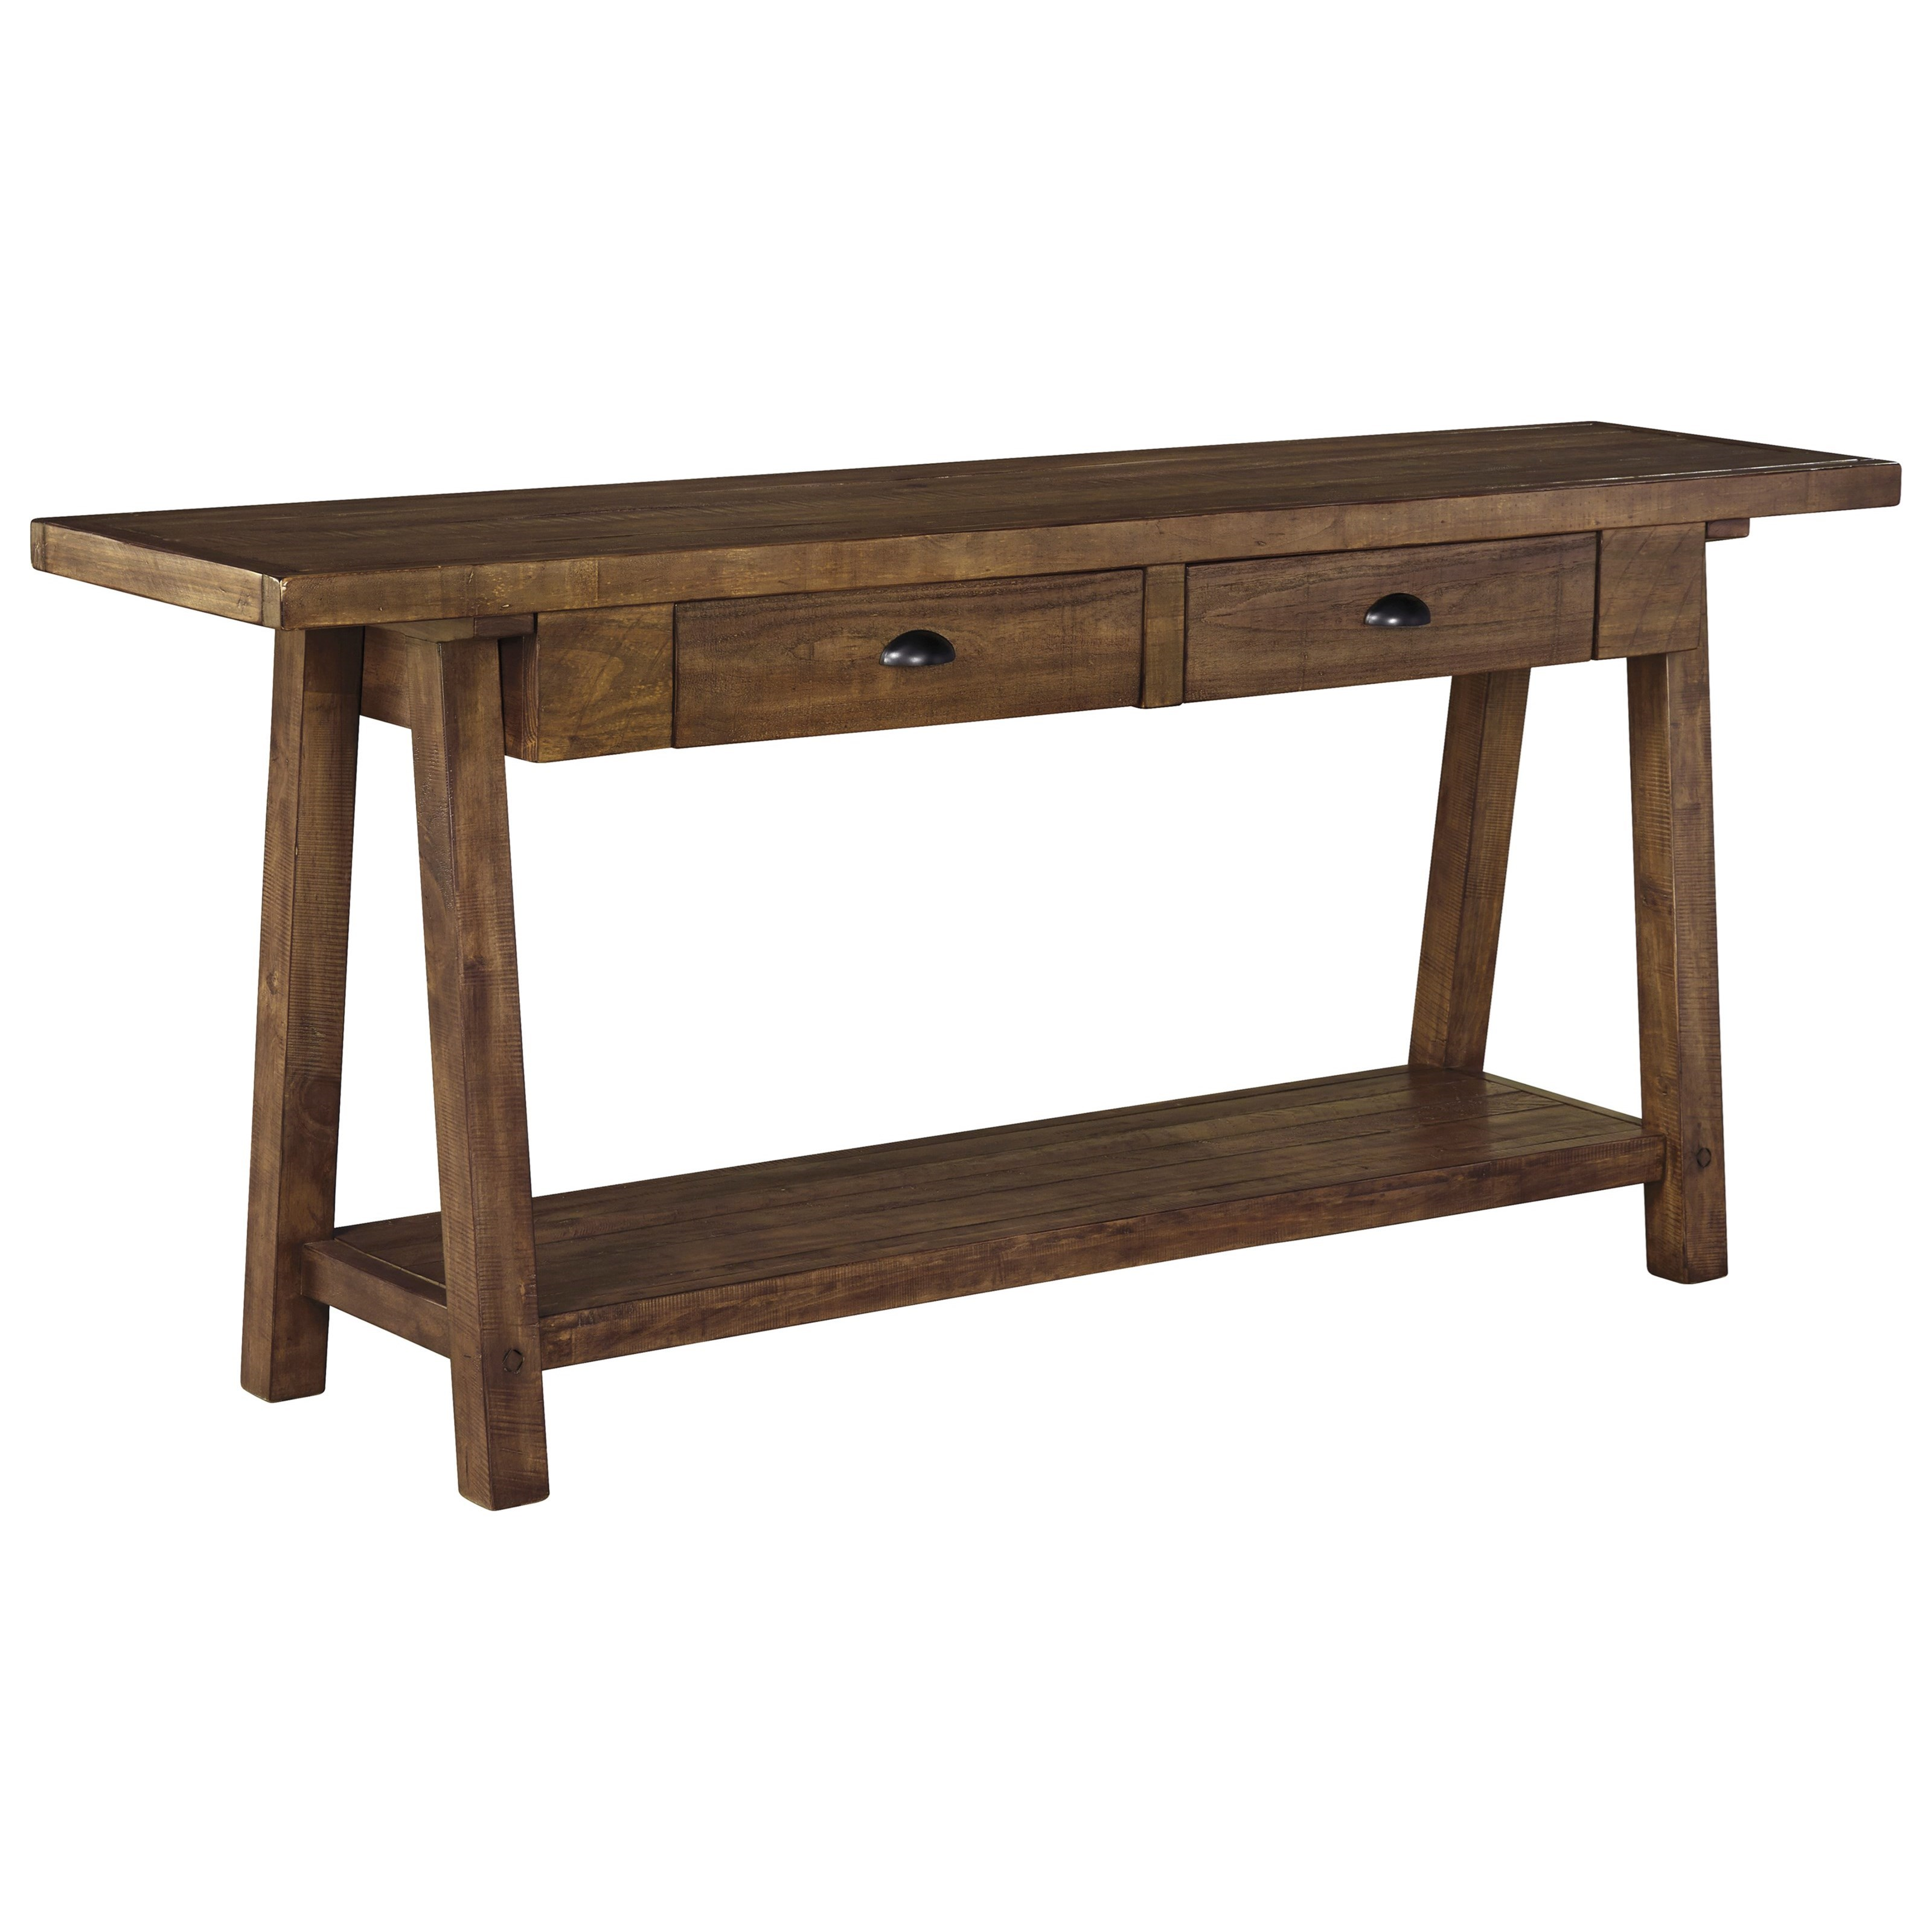 Signature Design by Ashley Dondie Sofa Table - Item Number: T863-4